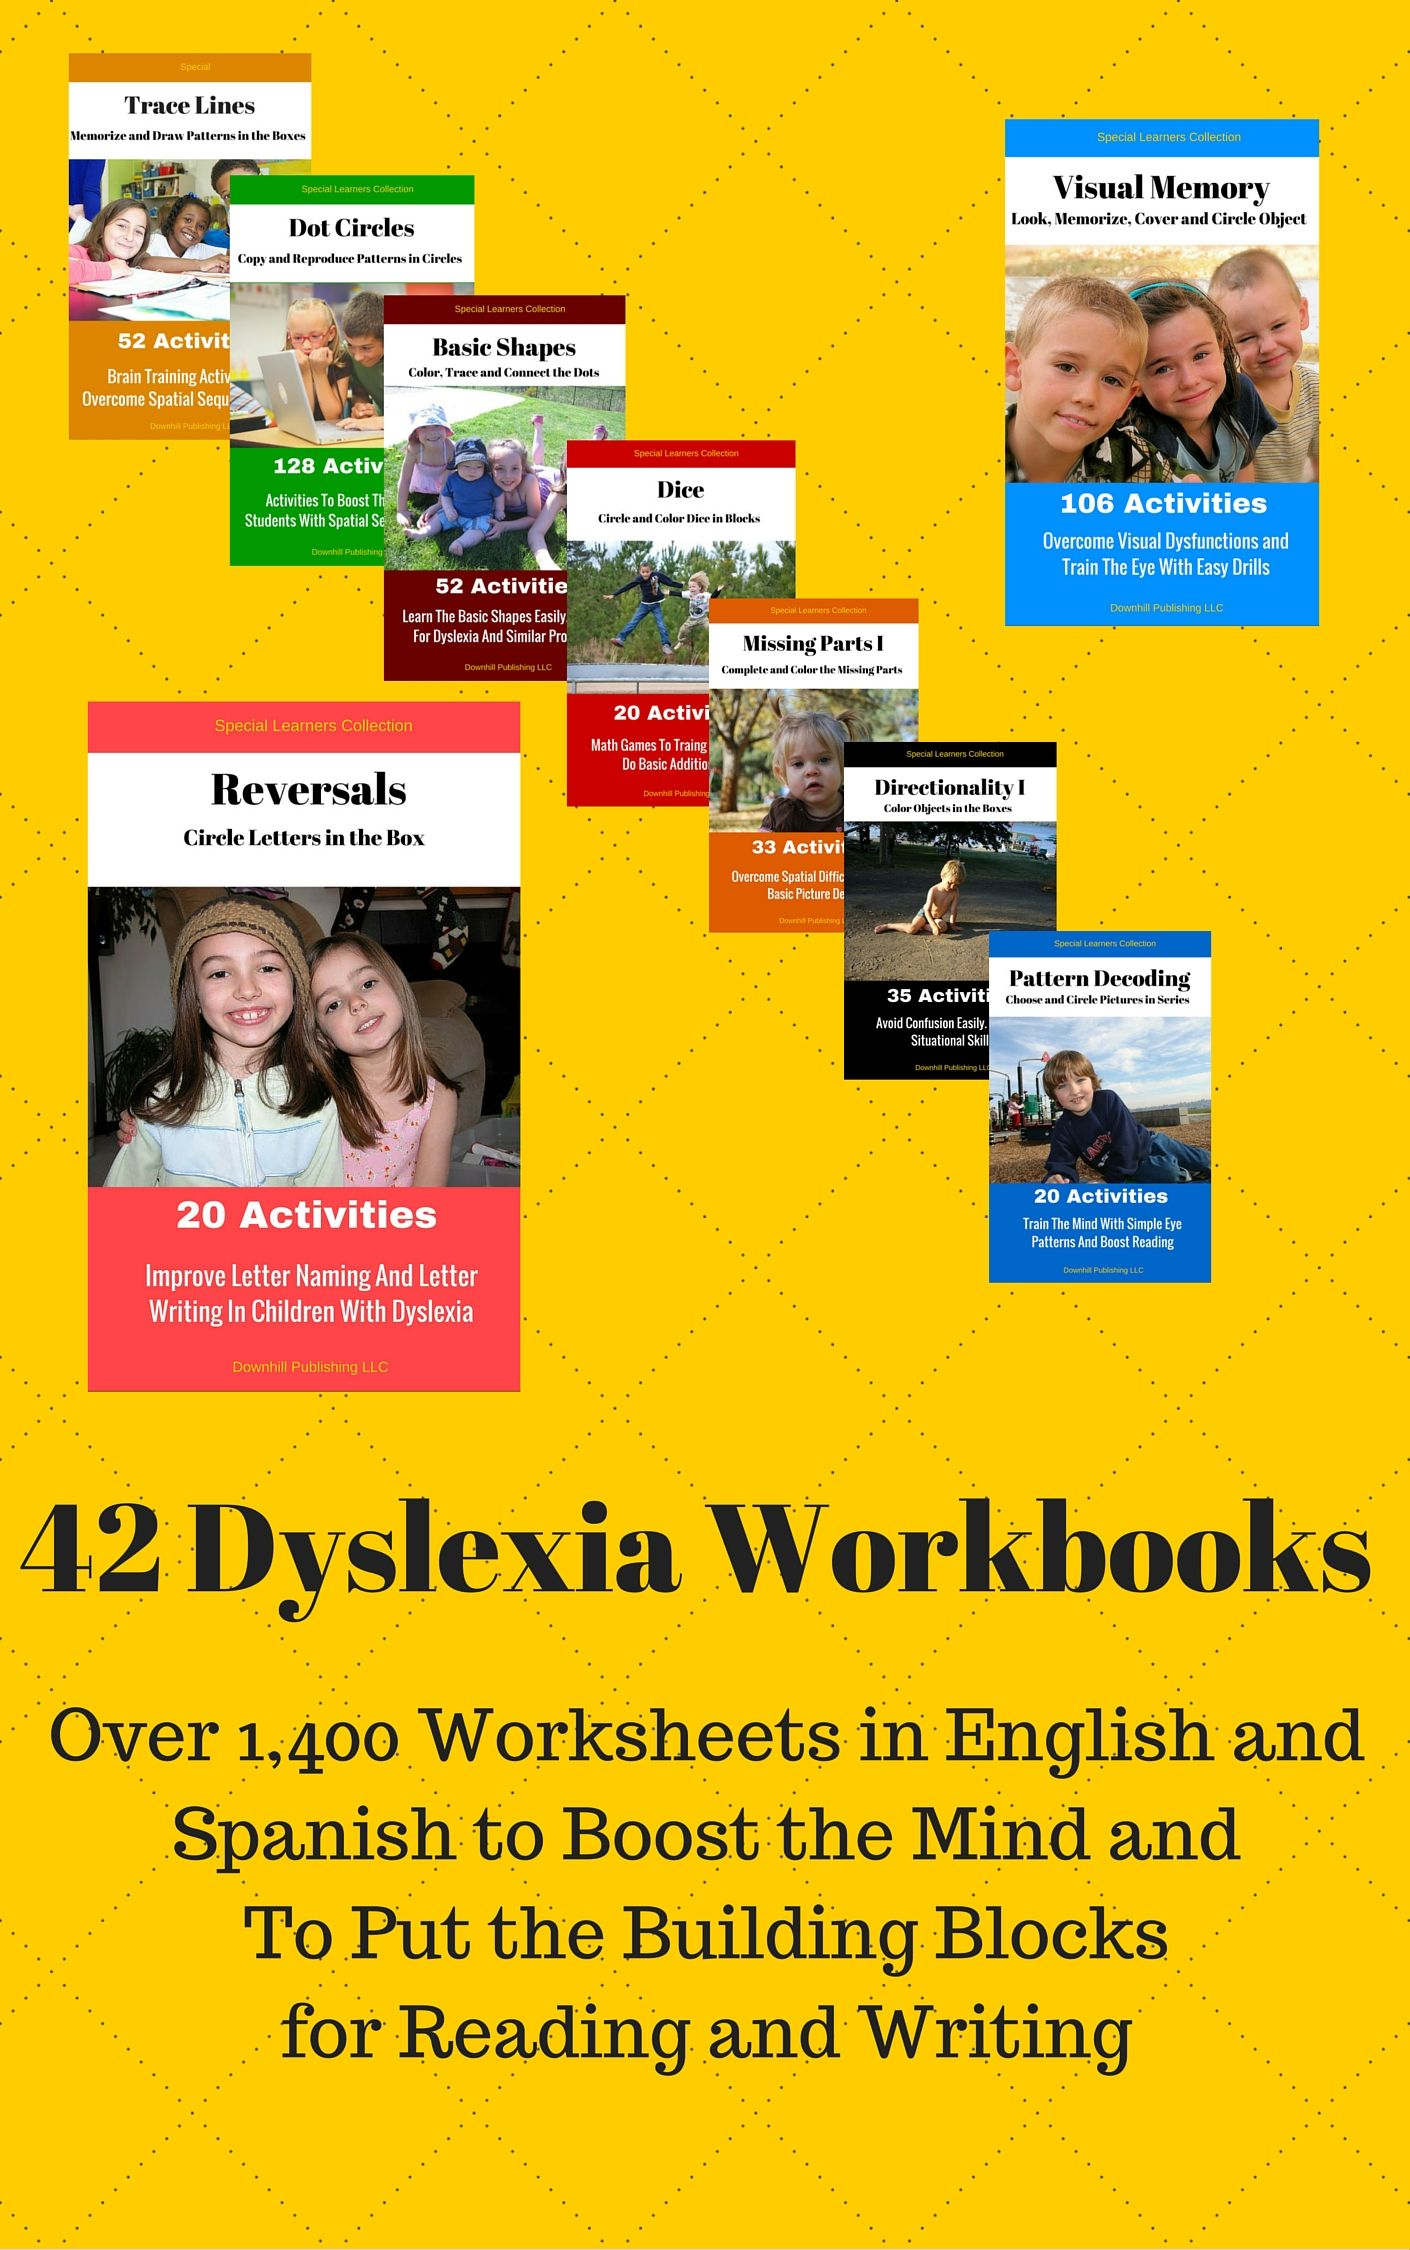 16 Dyslexia Worksheets Exercices